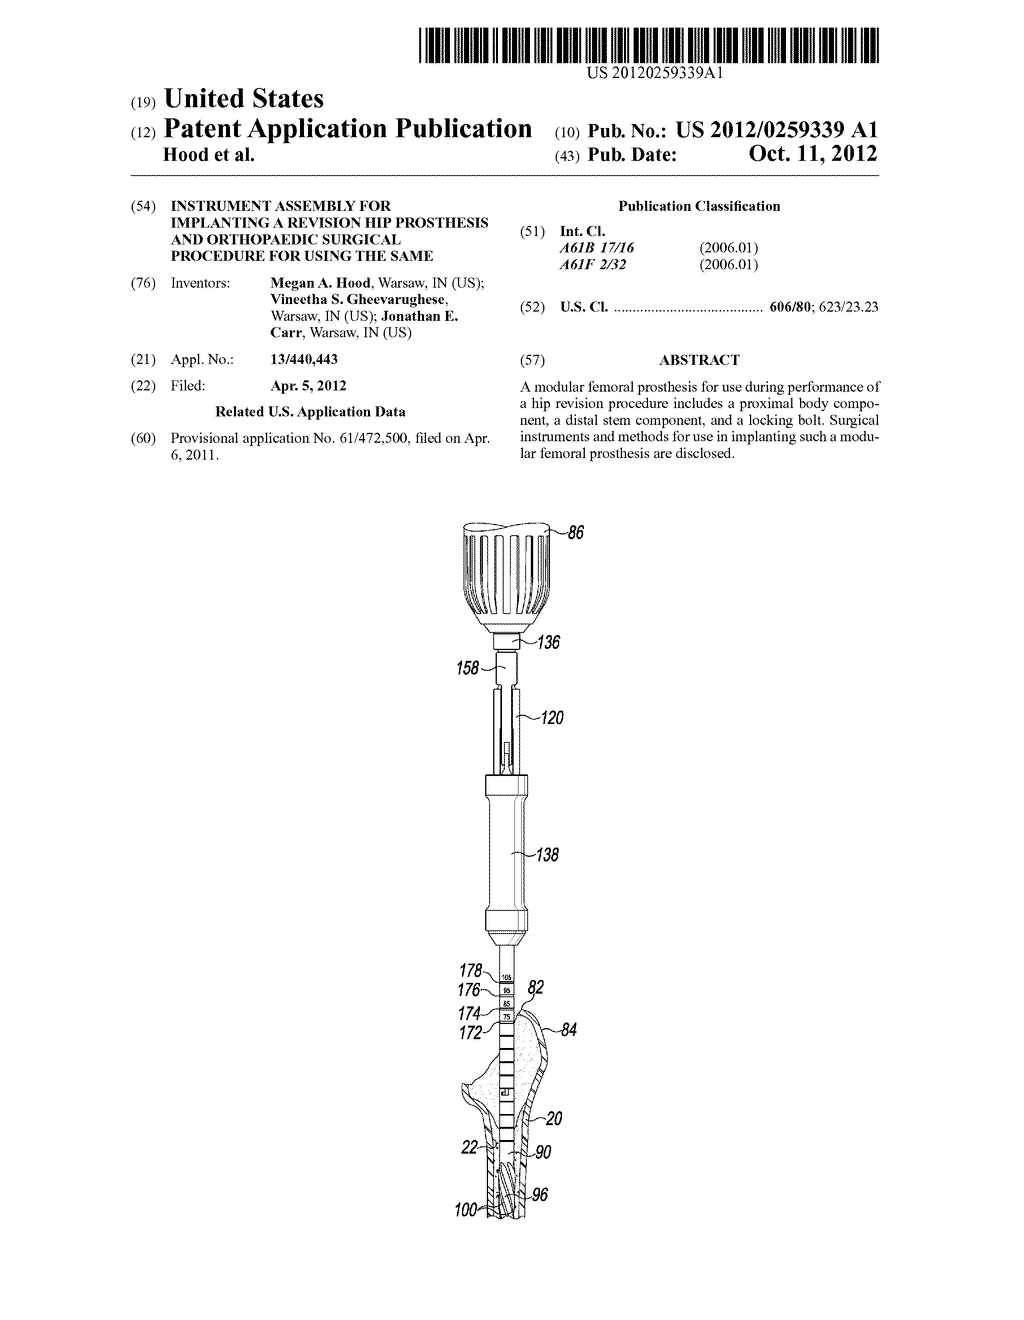 INSTRUMENT ASSEMBLY FOR IMPLANTING A REVISION HIP PROSTHESIS AND     ORTHOPAEDIC SURGICAL PROCEDURE FOR USING THE SAME - diagram, schematic, and image 01